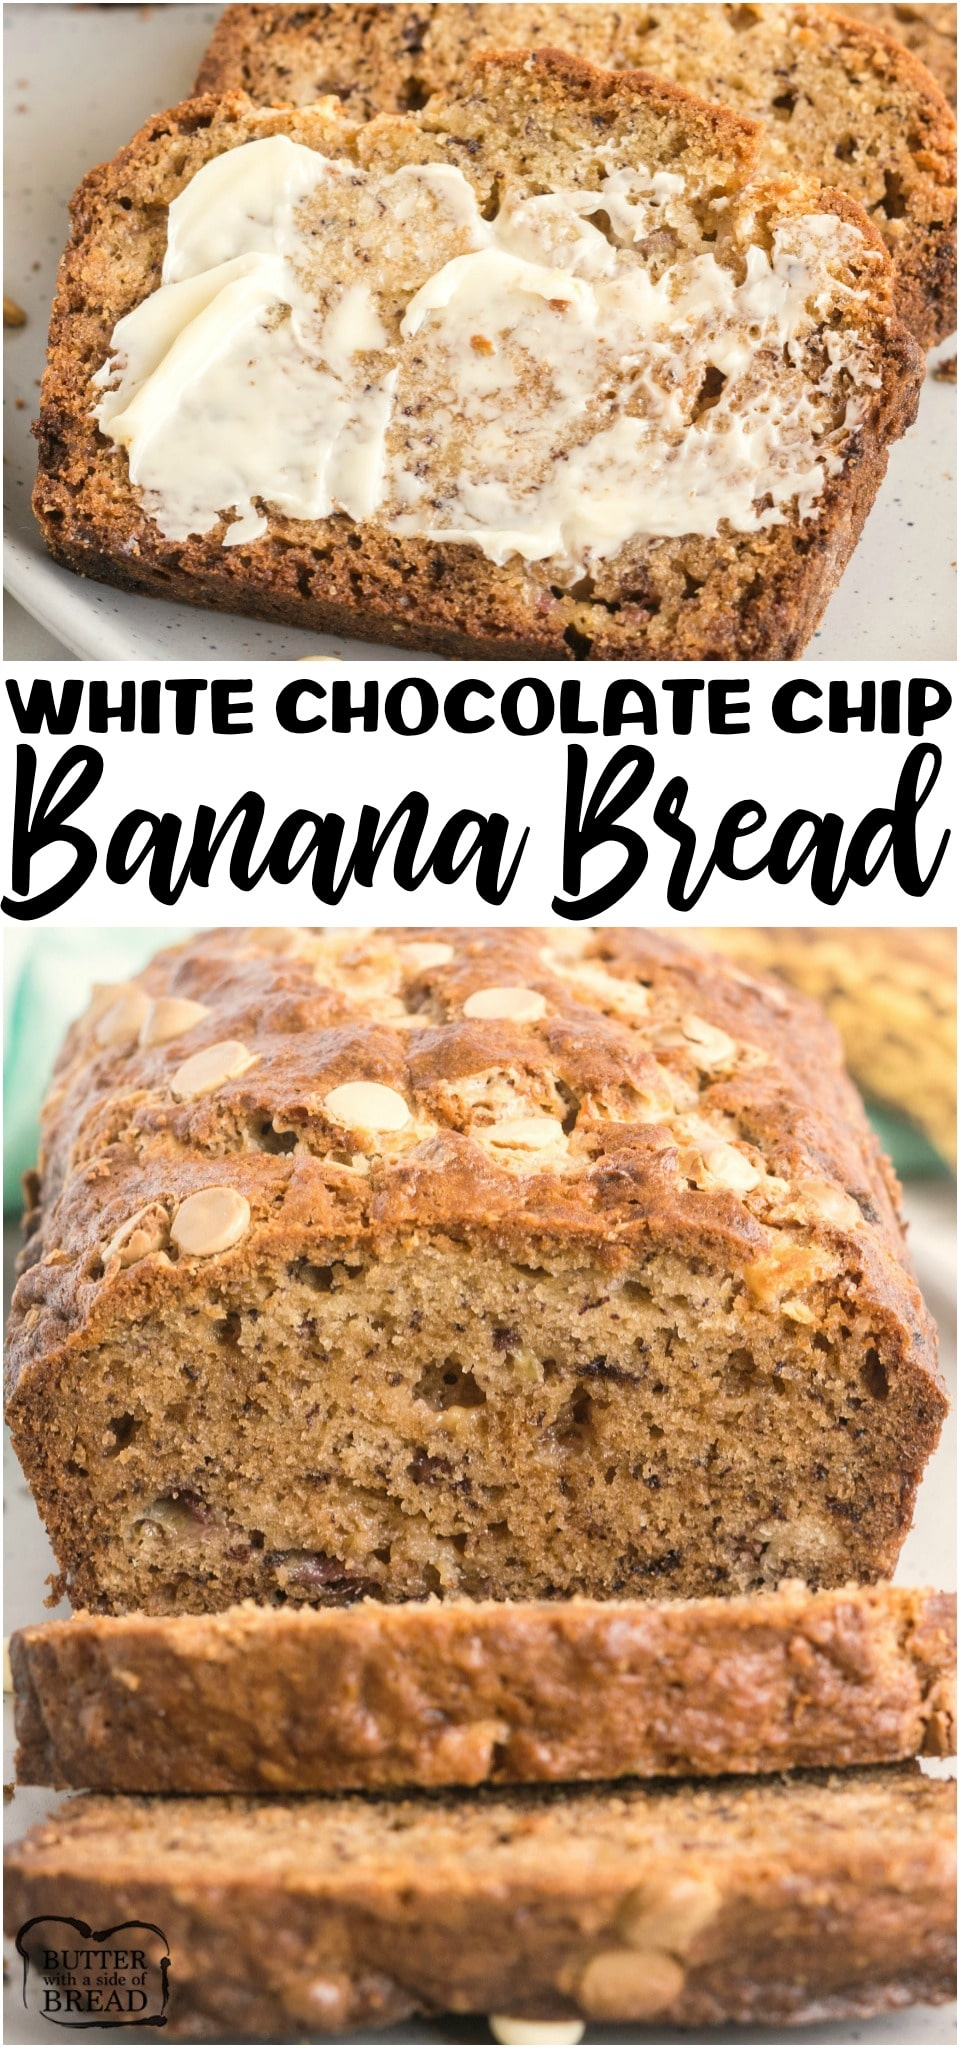 White Chocolate Chip Banana Bread is an incredible variation on classic banana bread!Sweet white chocolate and banana blending together to create an amazing banana bread recipe you need to try! #bread #banana #bananabread #baking #homemade #breadrecipe from BUTTER WITH A SIDE OF BREAD